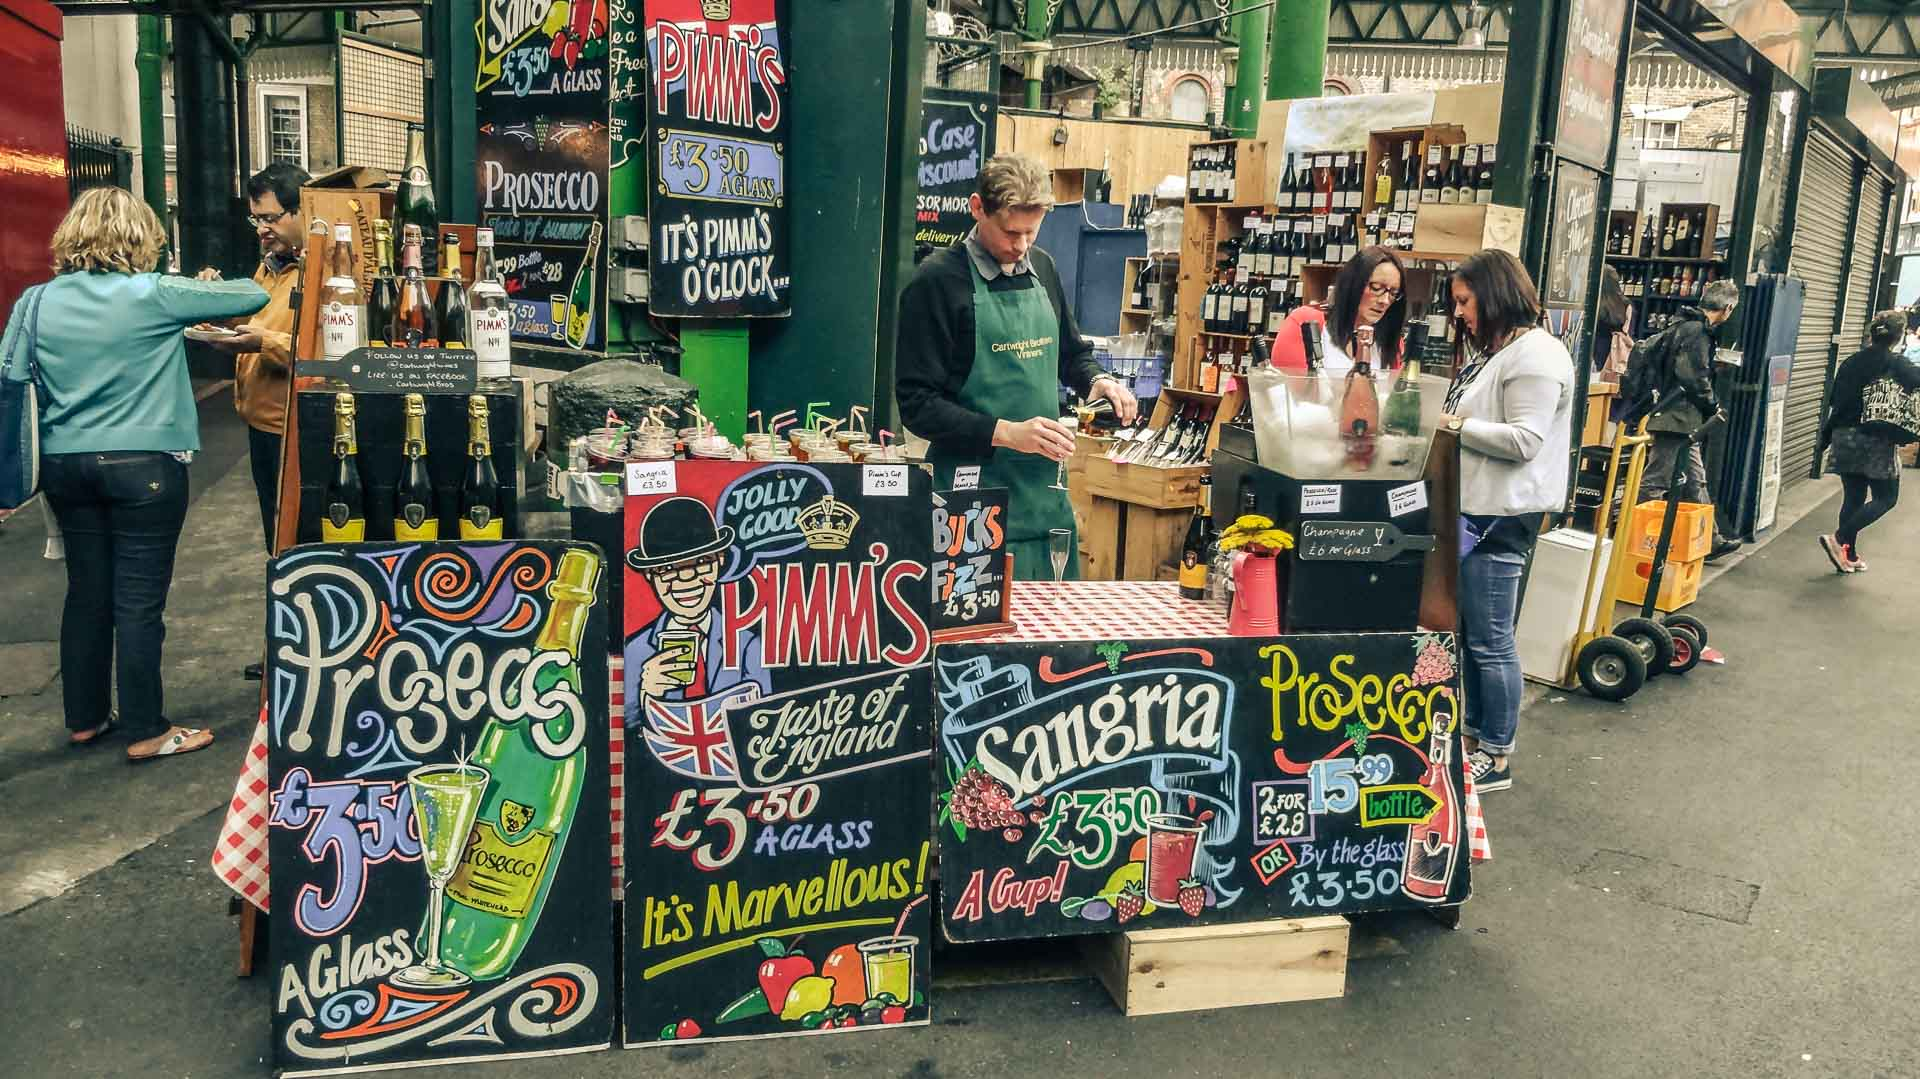 Wine stand on the Borough Market, London